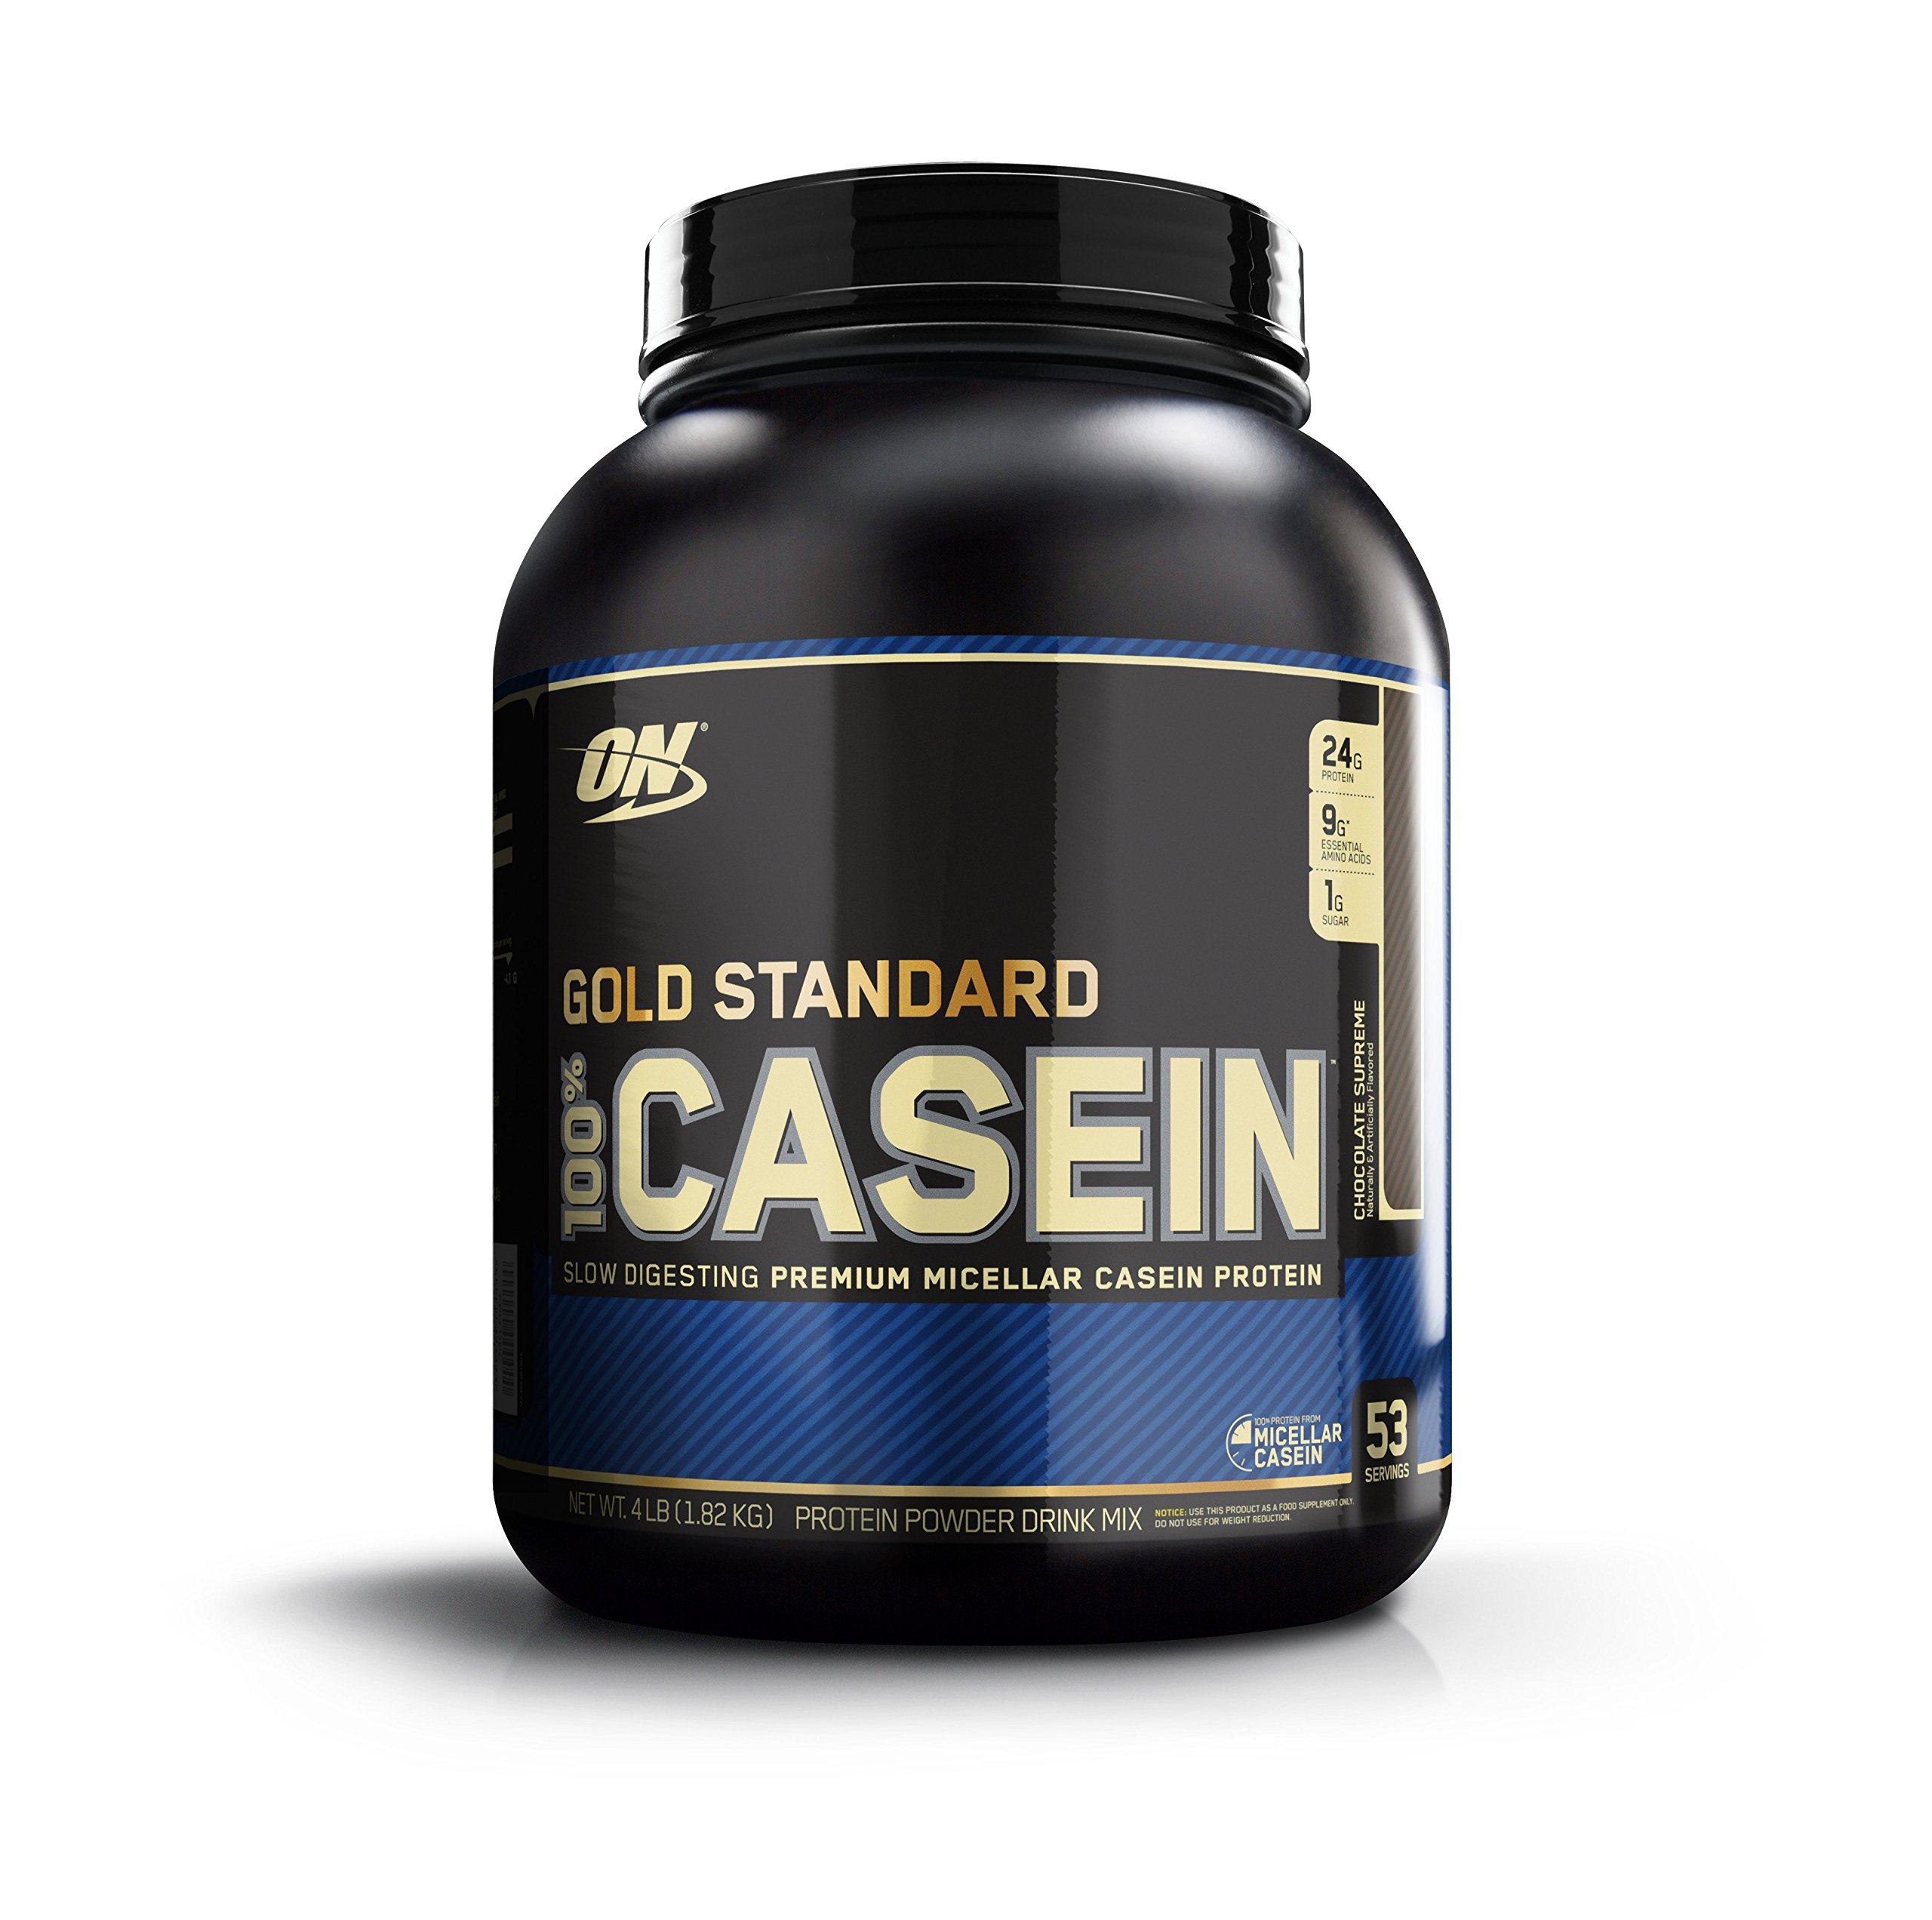 Optimum Nutrition Gold Standard 100% Micellar Casein Protein Powder, Slow Digtesting to Support Appetite Control, Overnight Muscle Recovery, Chocolate Supreme, 4 Pound